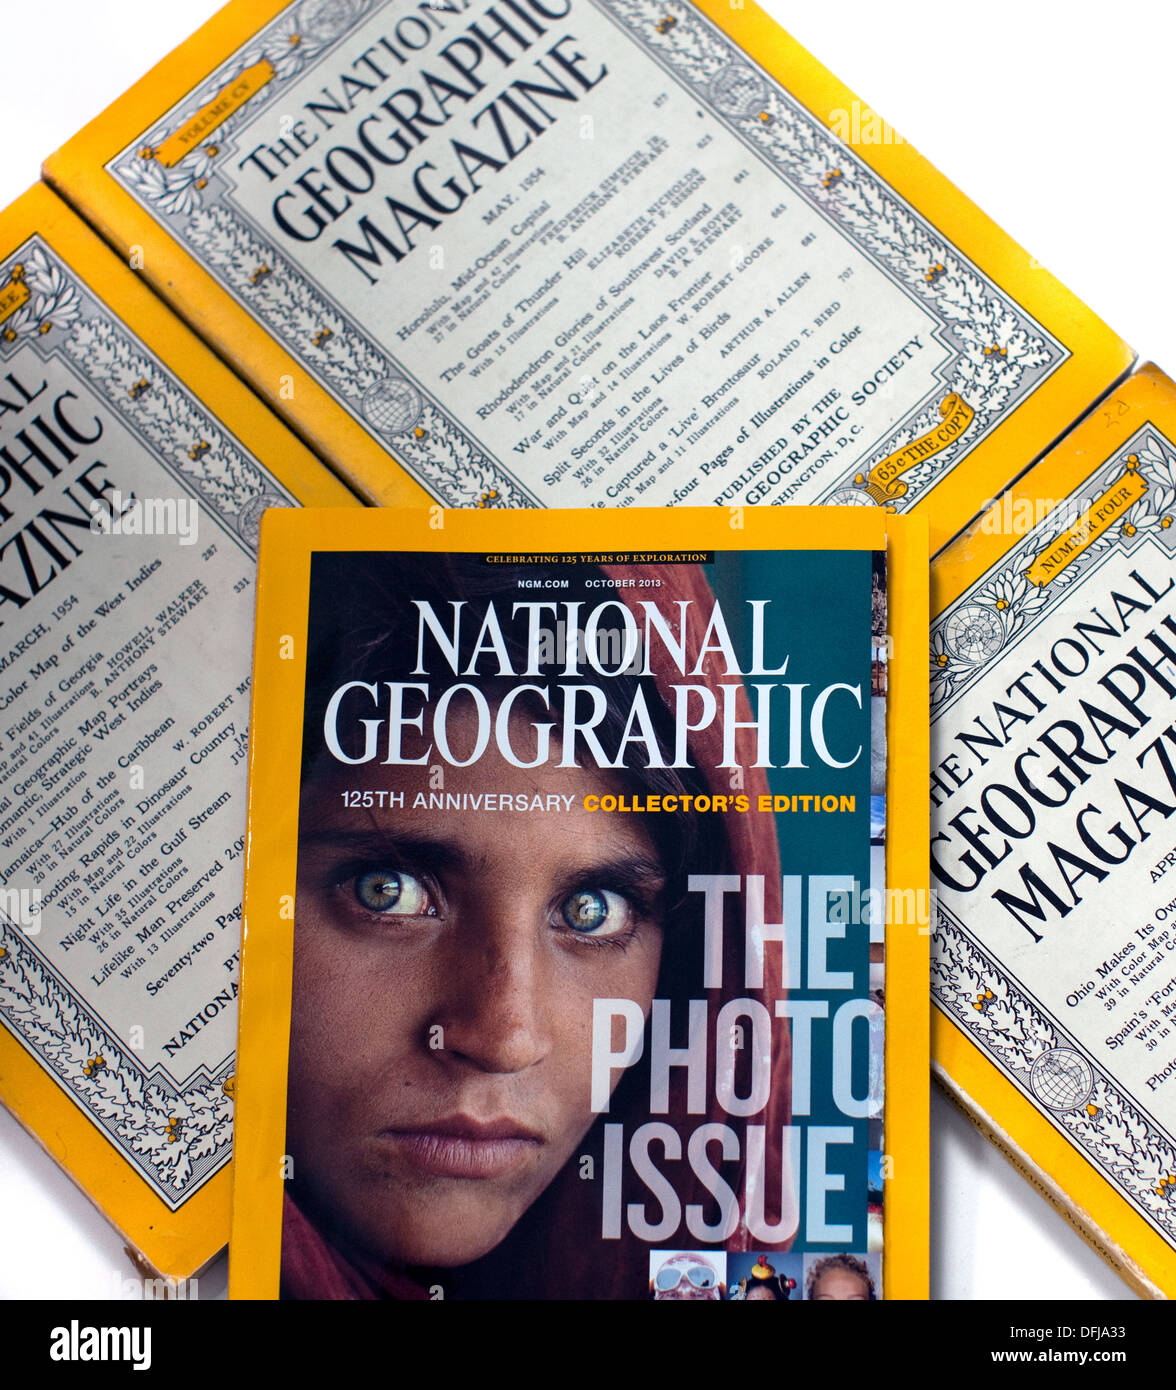 125th anniversary issue of National Geographic with vintage editions, London - Stock Image